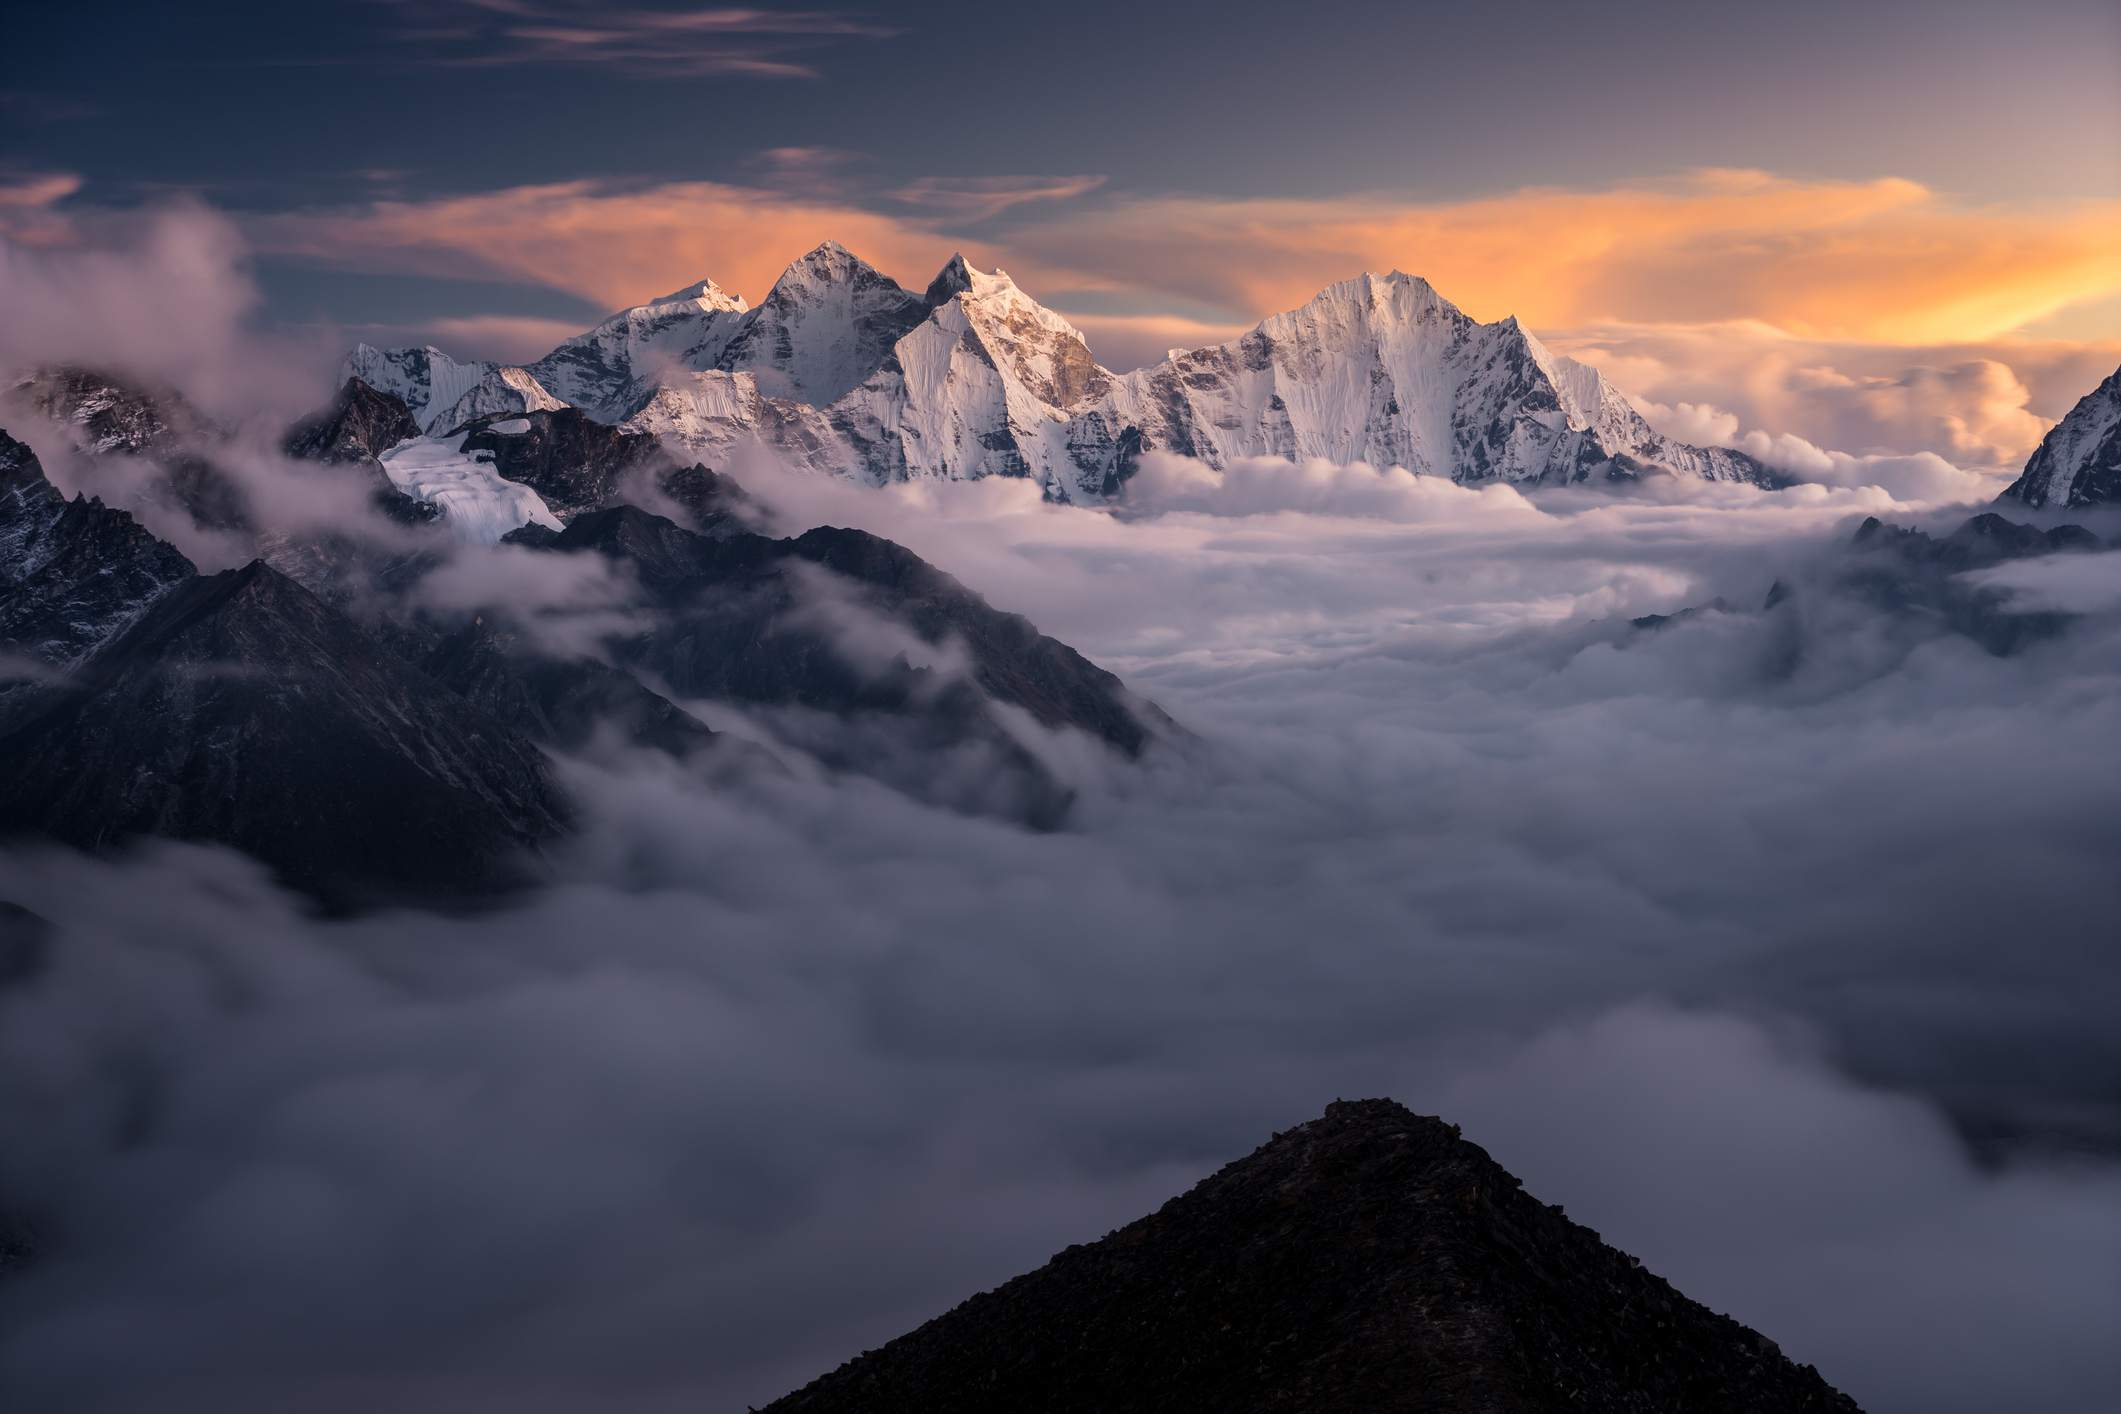 Peaks of the Himalayas above the clouds at sunset